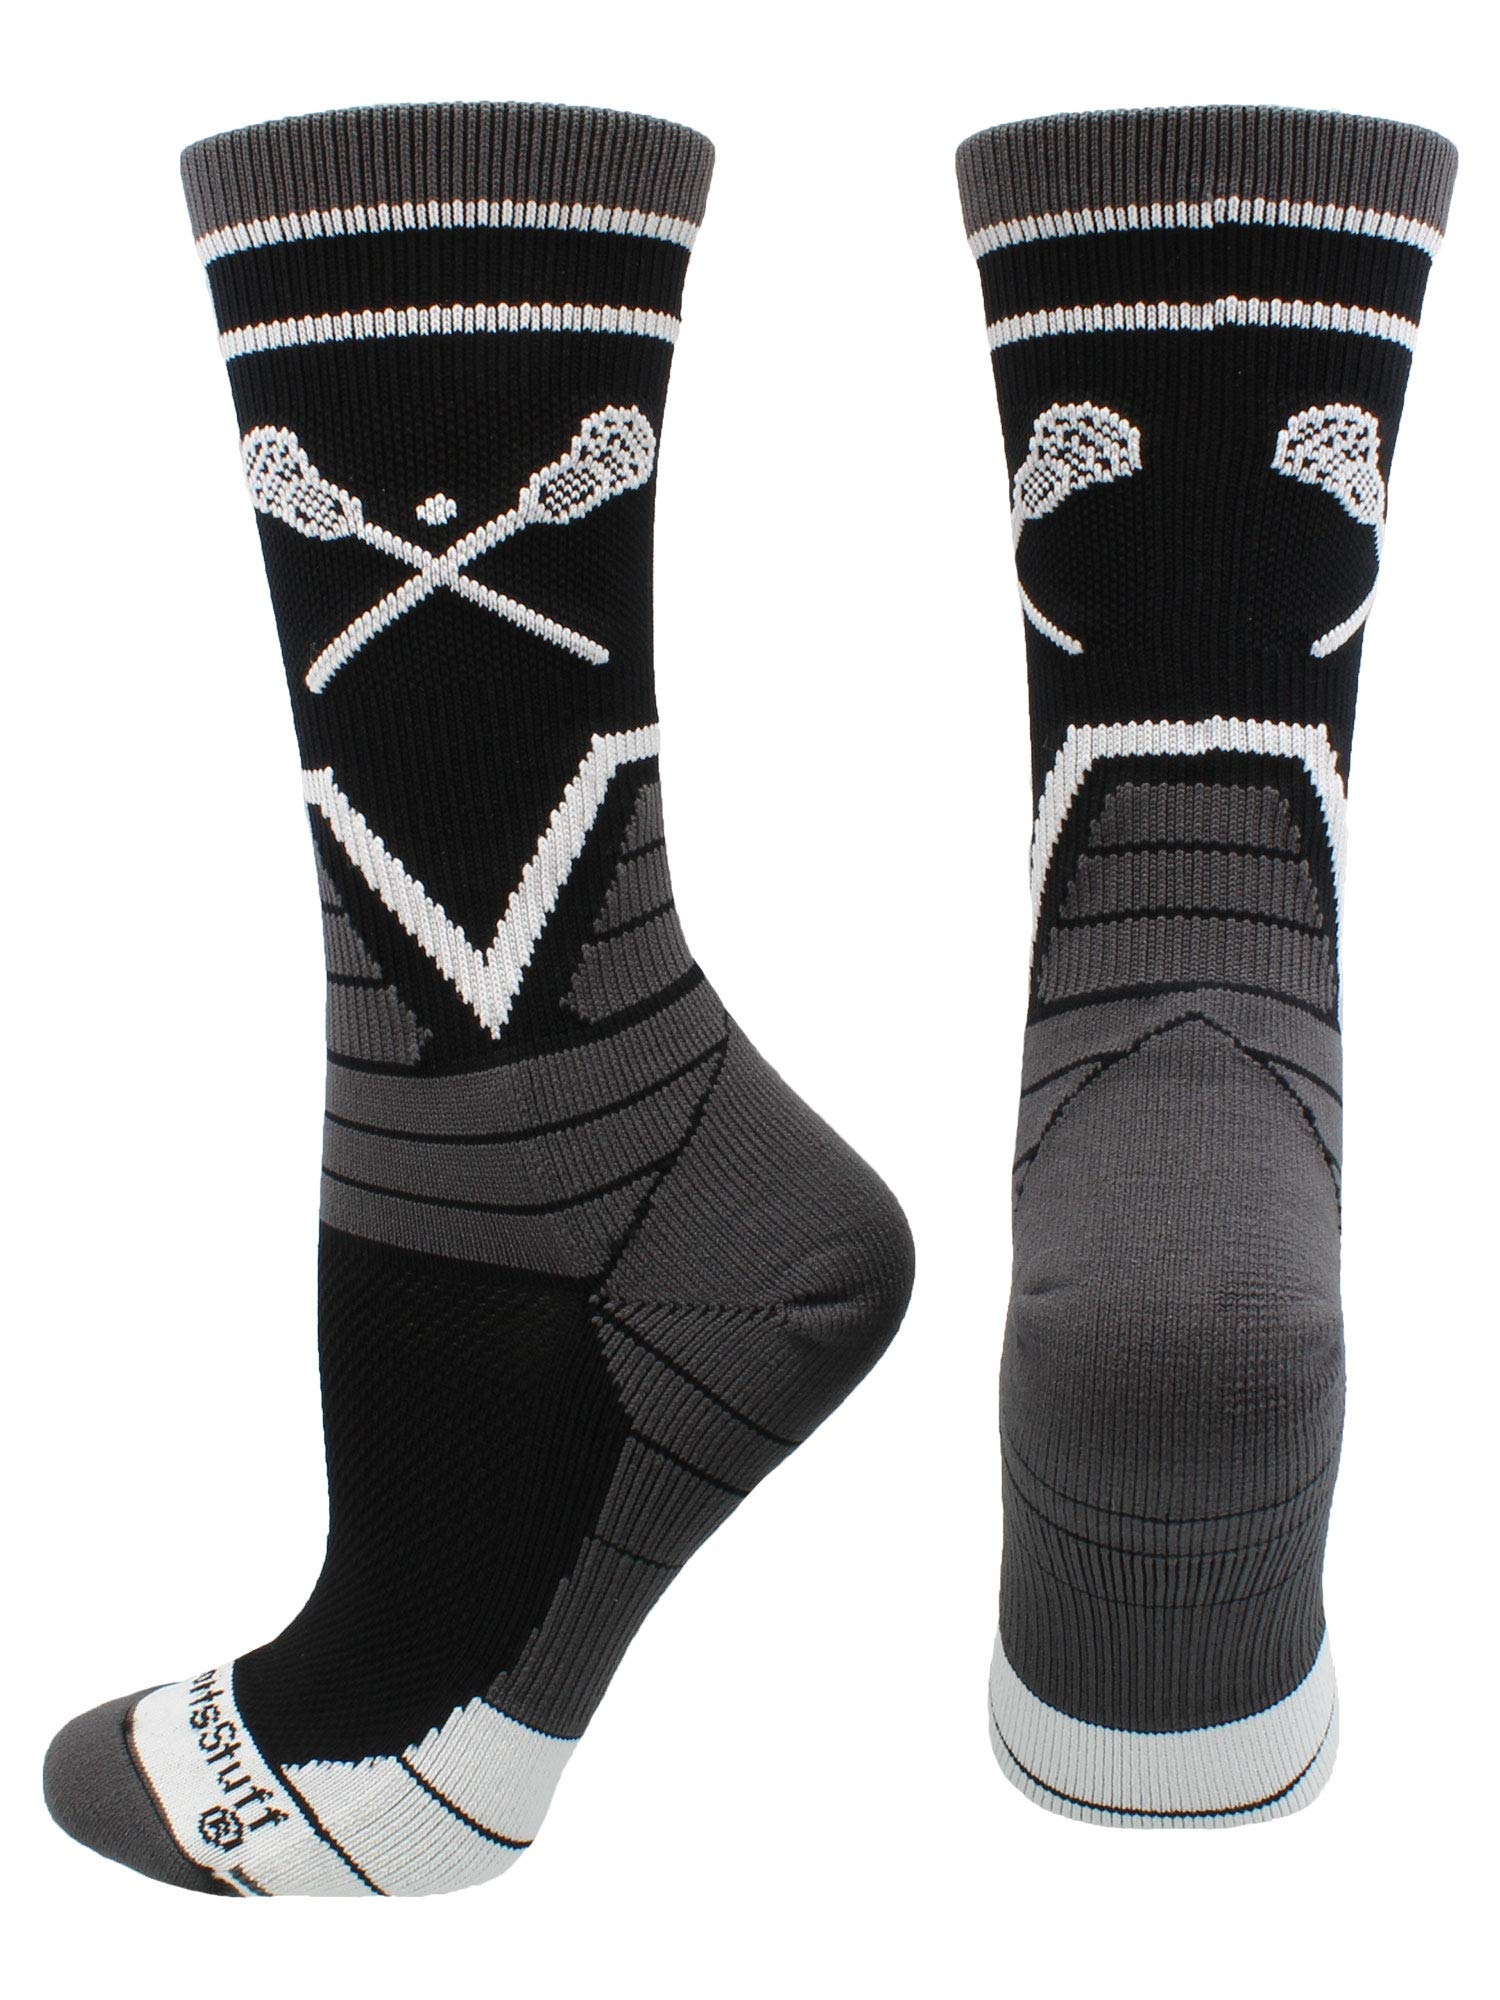 MadSportsStuff Lacrosse Victory Crew Socks (Black/Graphite/White, Medium)